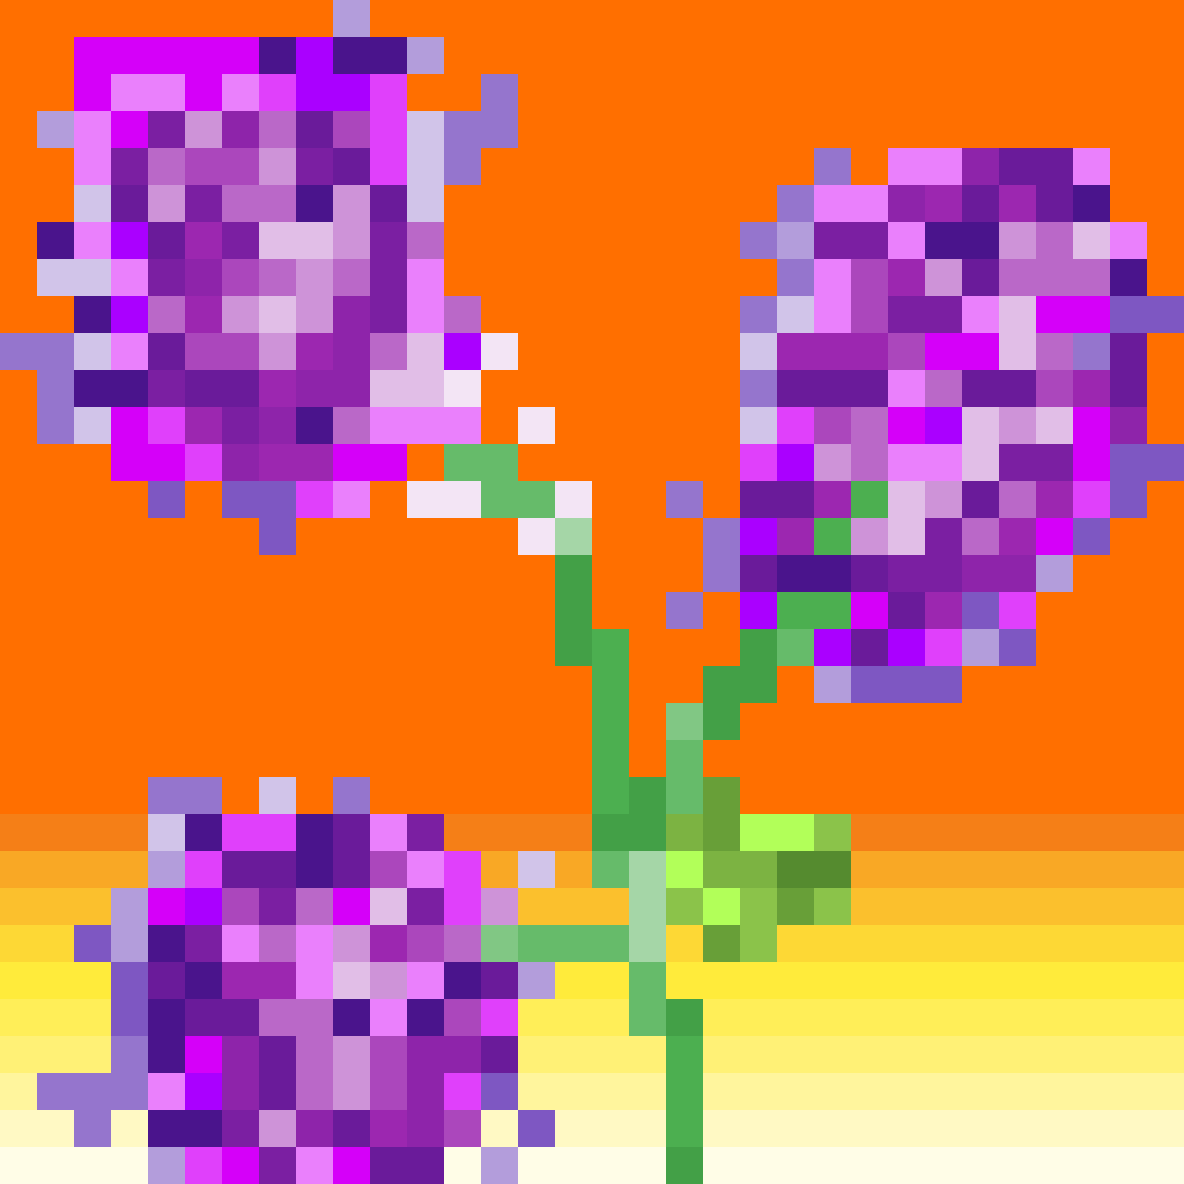 Flowers 1 by Ilovefrogs1234